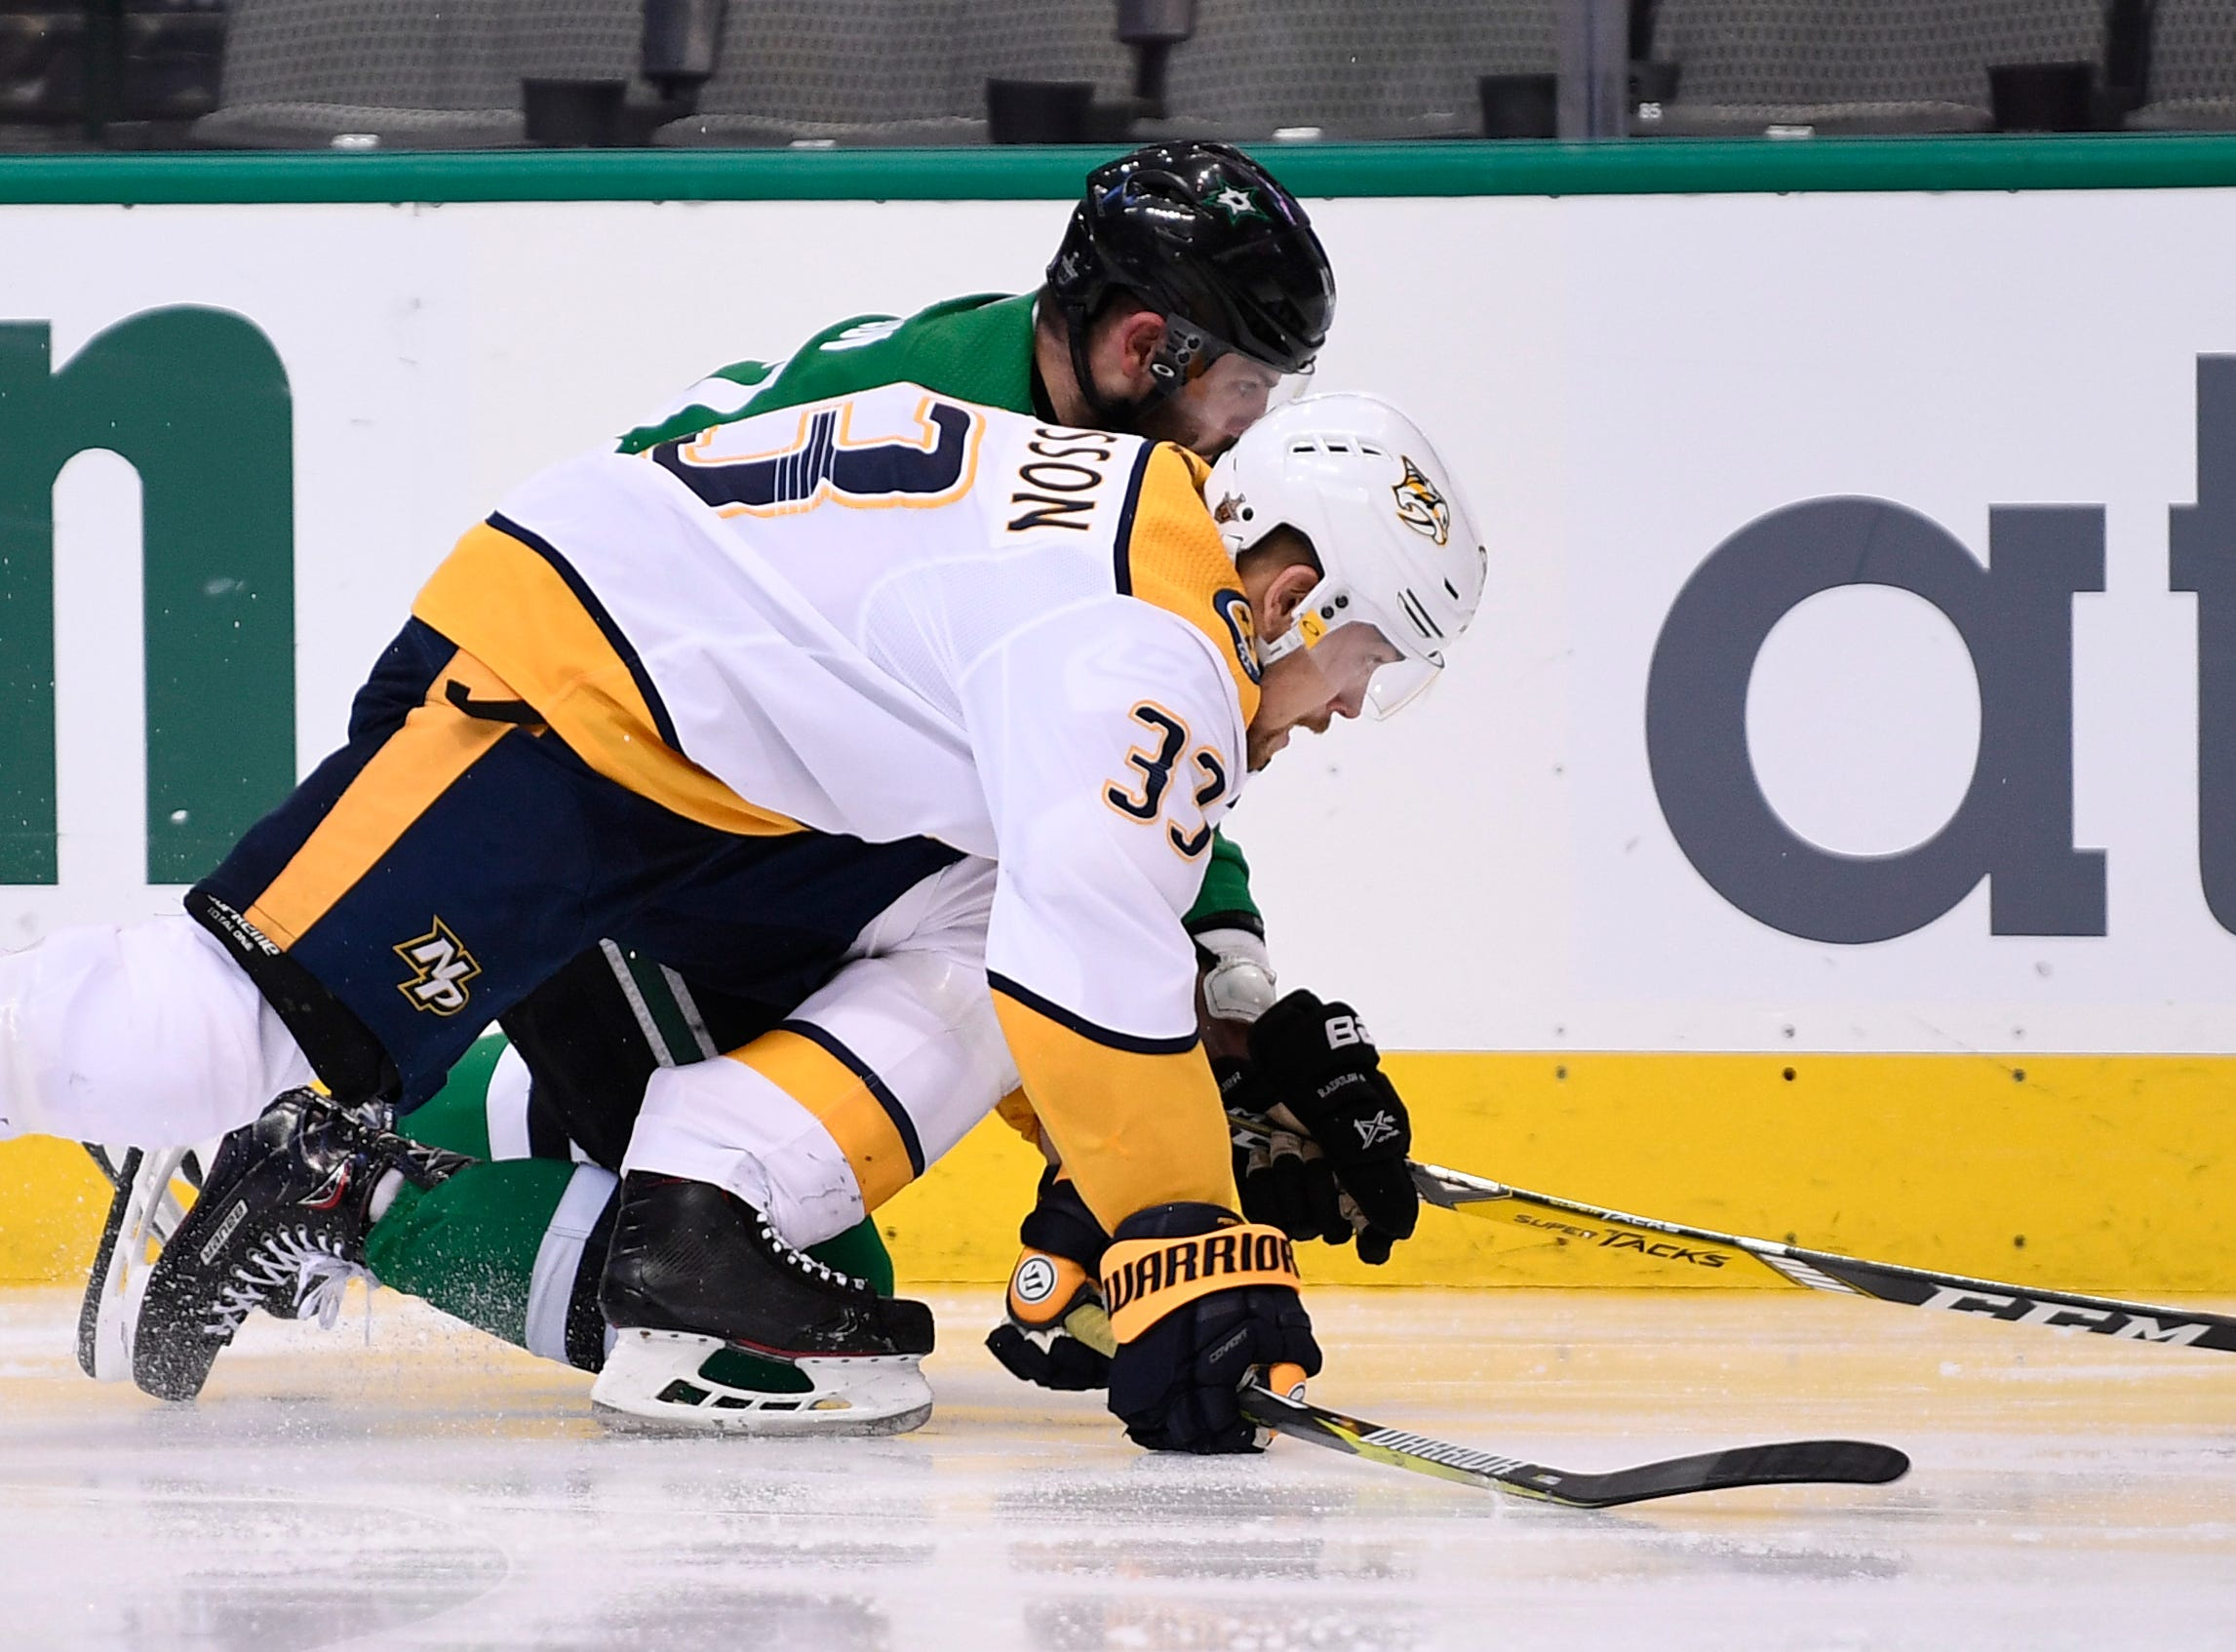 Nashville Predators right wing Viktor Arvidsson (33) and Dallas Stars right wing Alexander Radulov (47) battle for the puck during the second period of the divisional semifinal game at the American Airlines Center in Dallas, Texas, Monday, April 22, 2019.